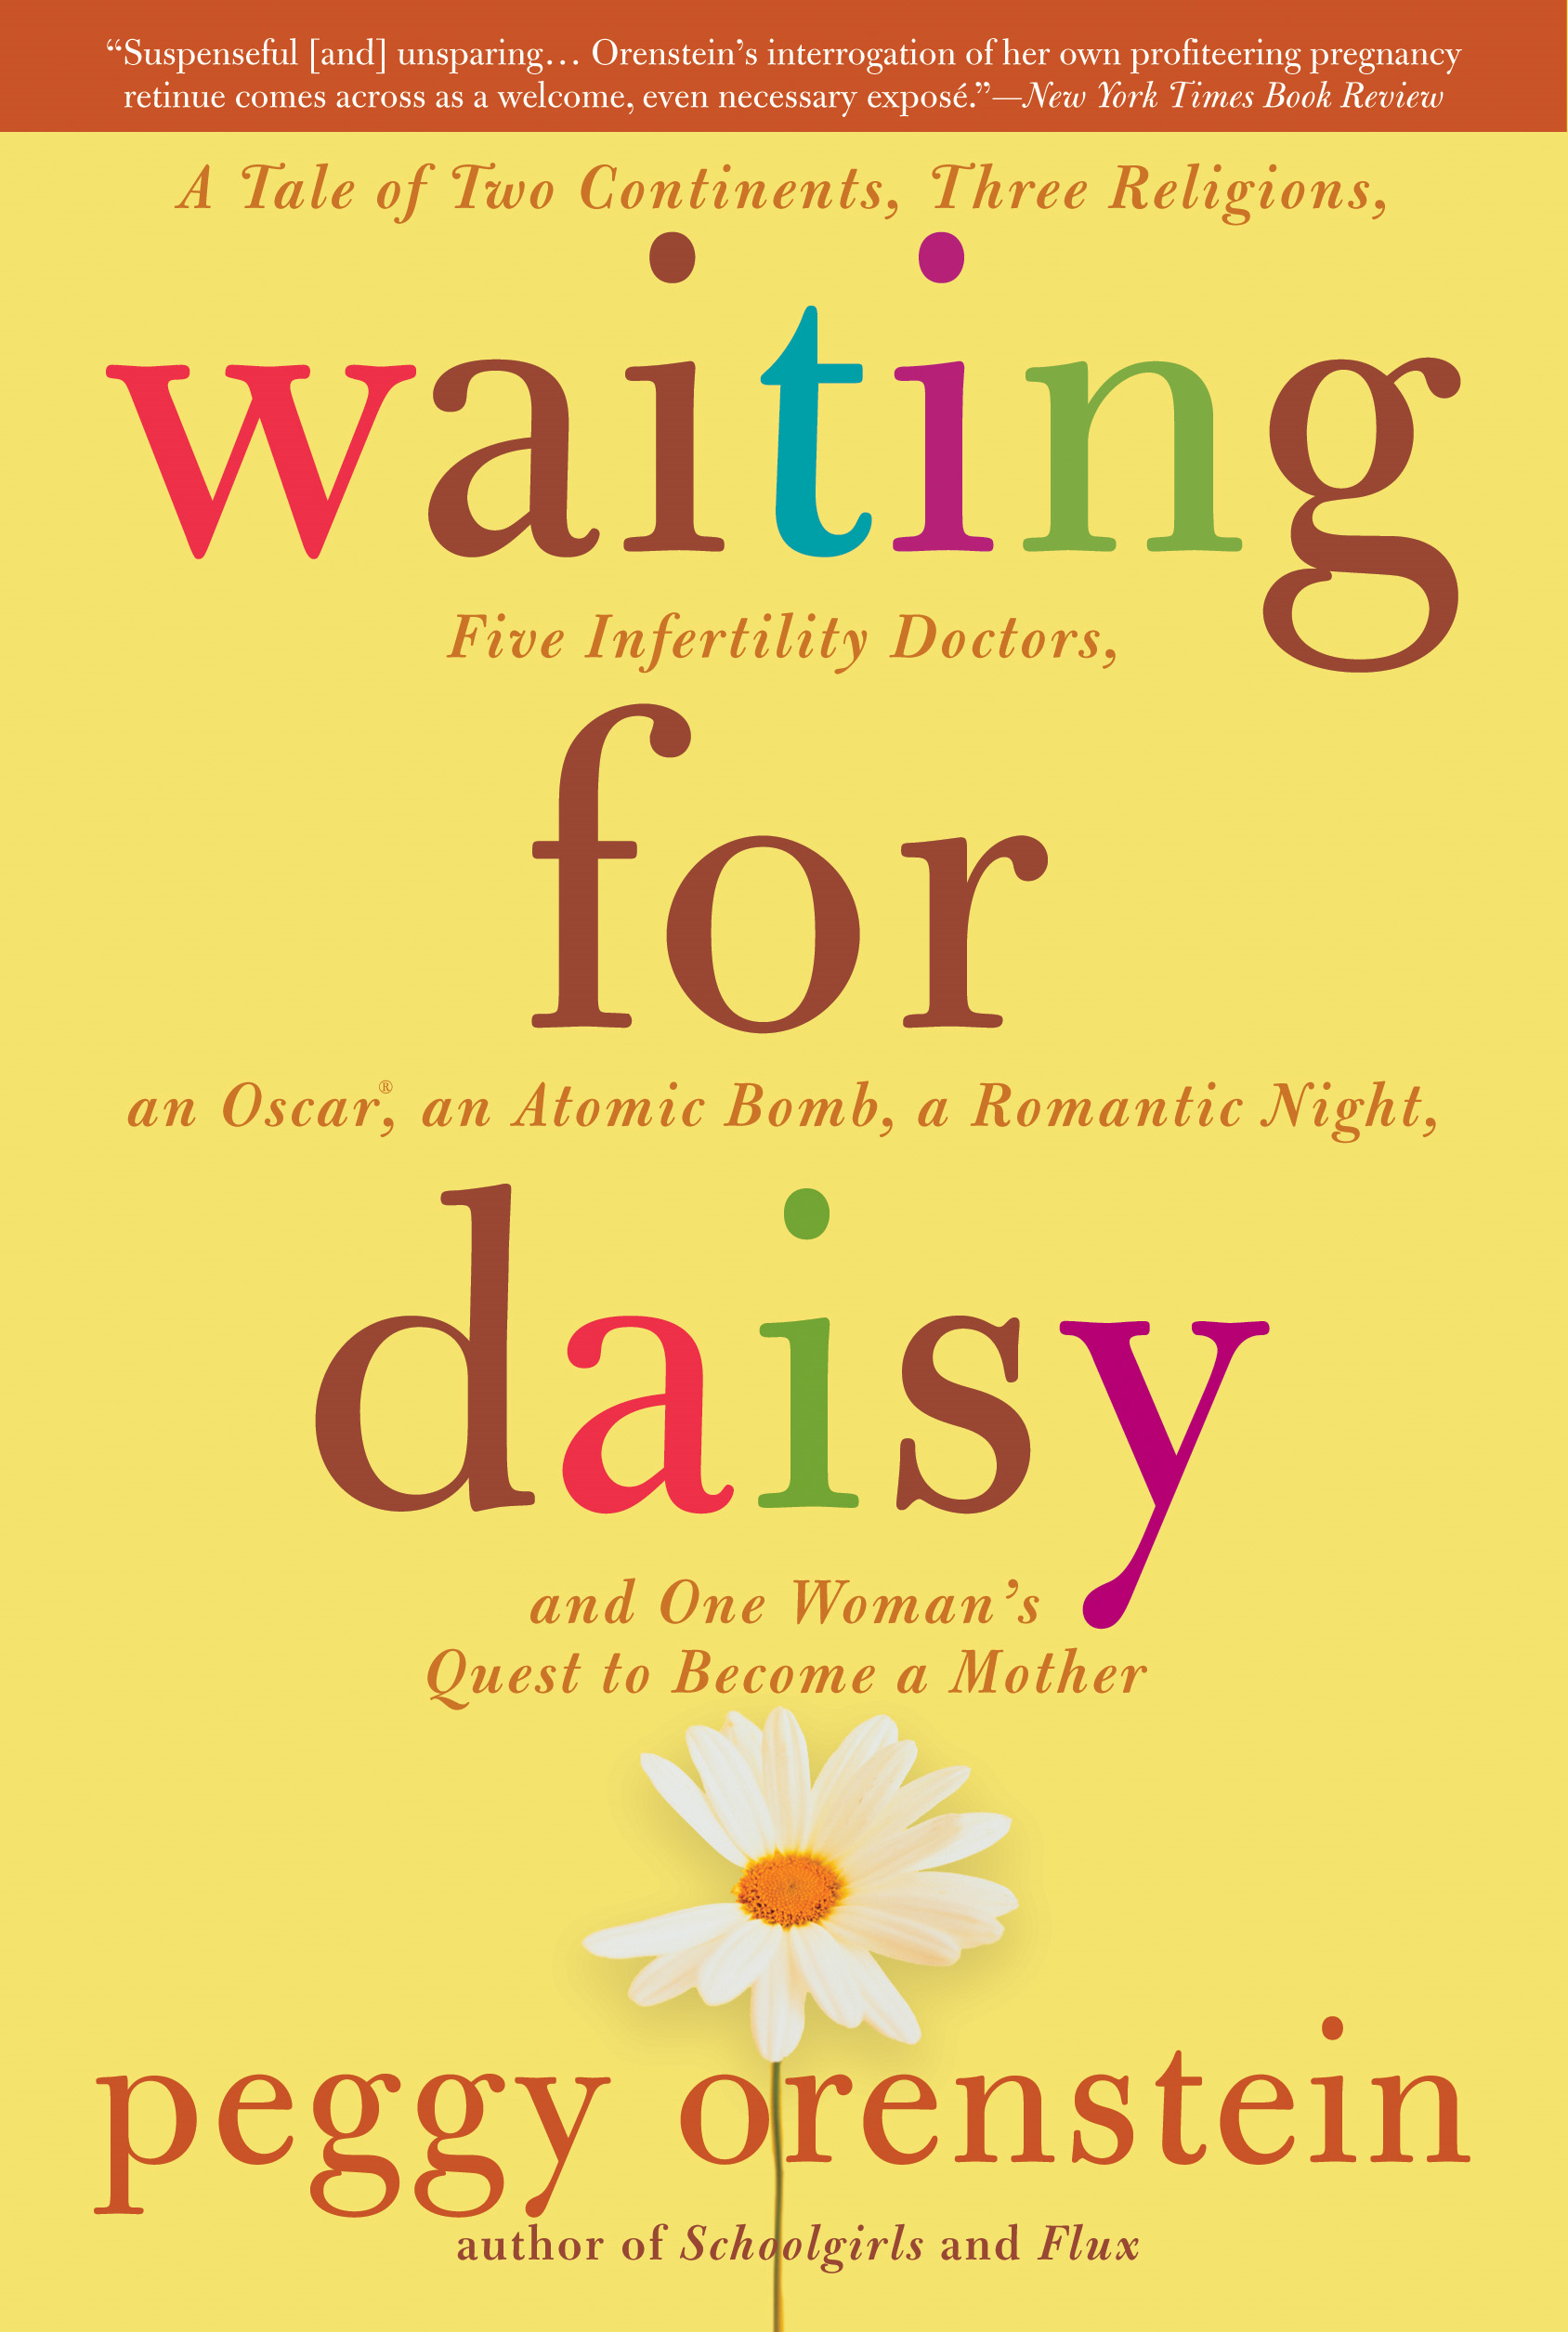 Waiting for Daisy: A Tale of Two Continents, Three Religions, Five Infertility Doctors, an Oscar, an Atomic Bomb, a Rom By: Peggy Orenstein